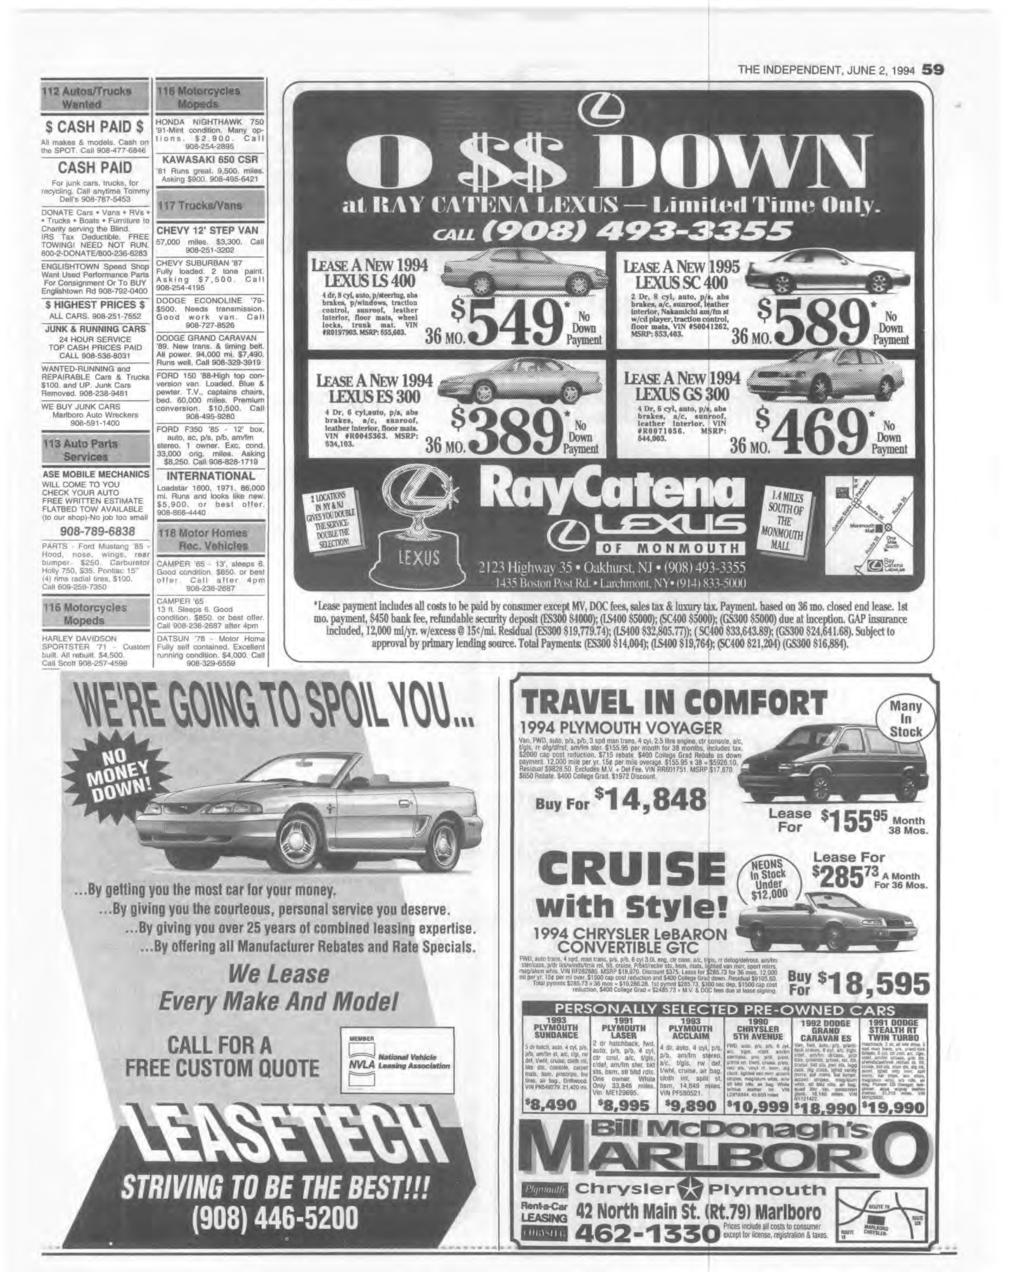 T He Sco O P N Ice Cream Pdf Carling 70 Amp Black Boat On Off Rocker Circuit Breaker Ebay 116 Motorcycles The Independent June 2 1994 5 9 C A S H I D All Makes